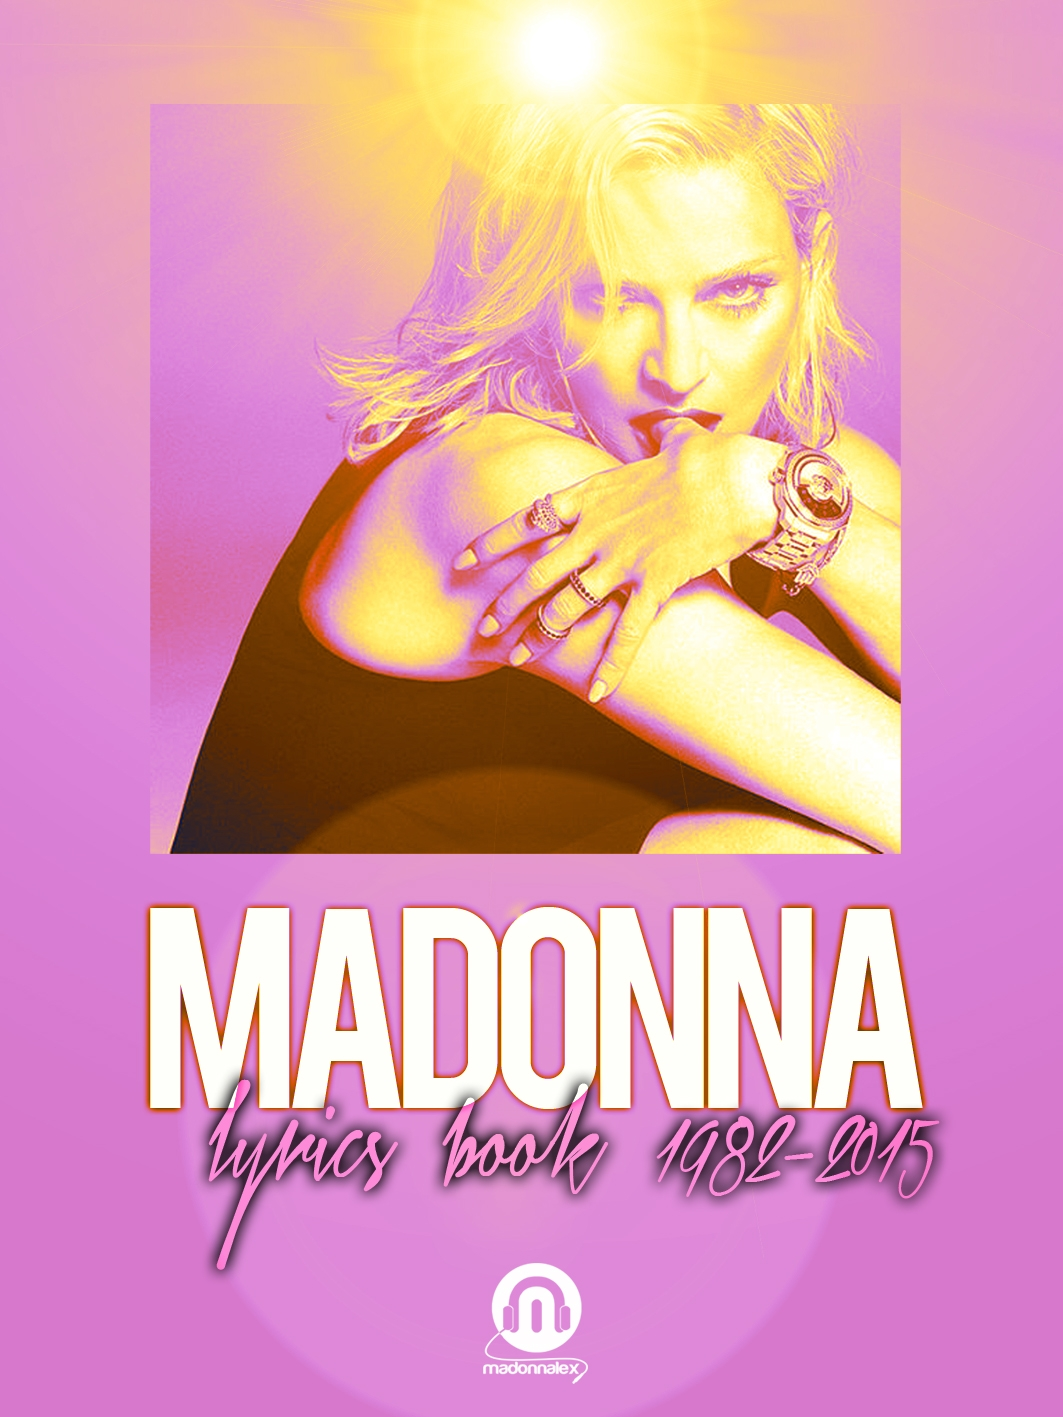 Madonnalex Madonna Lyrics Book 2015